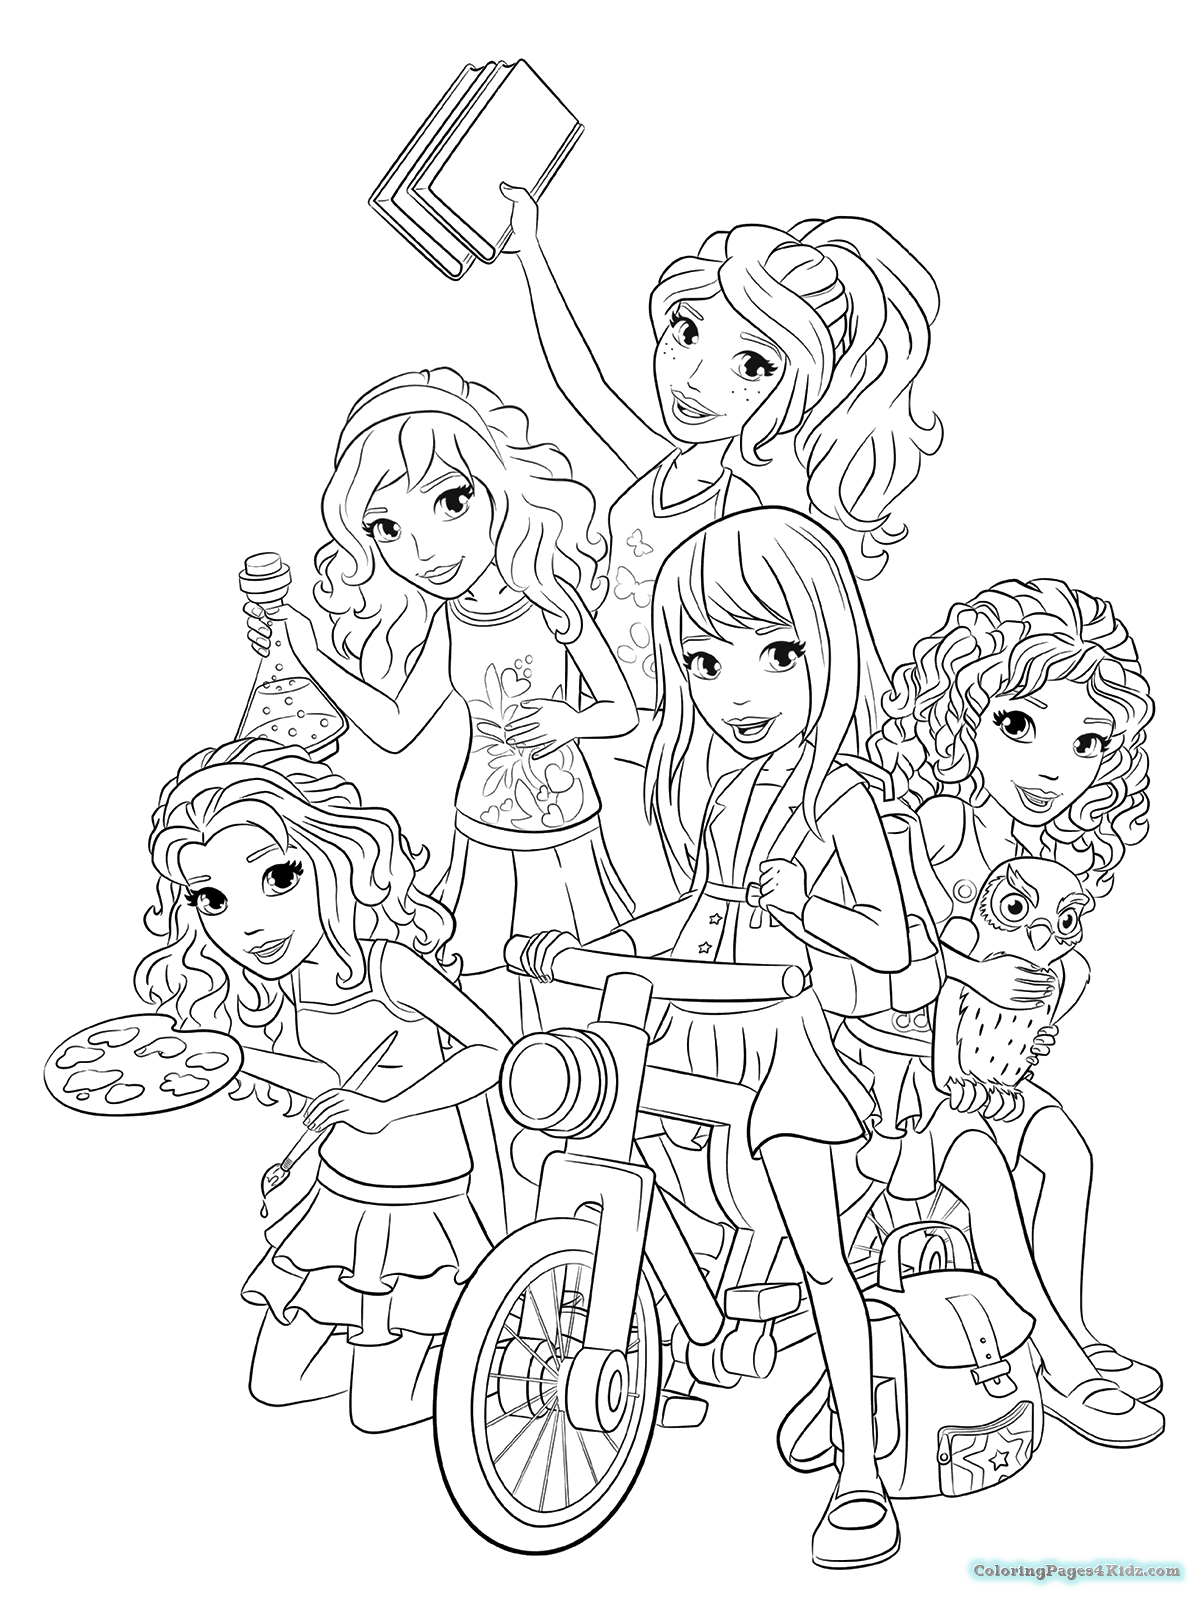 lego friends coloring pages lego friends olivia coloring page free printable friends lego pages coloring